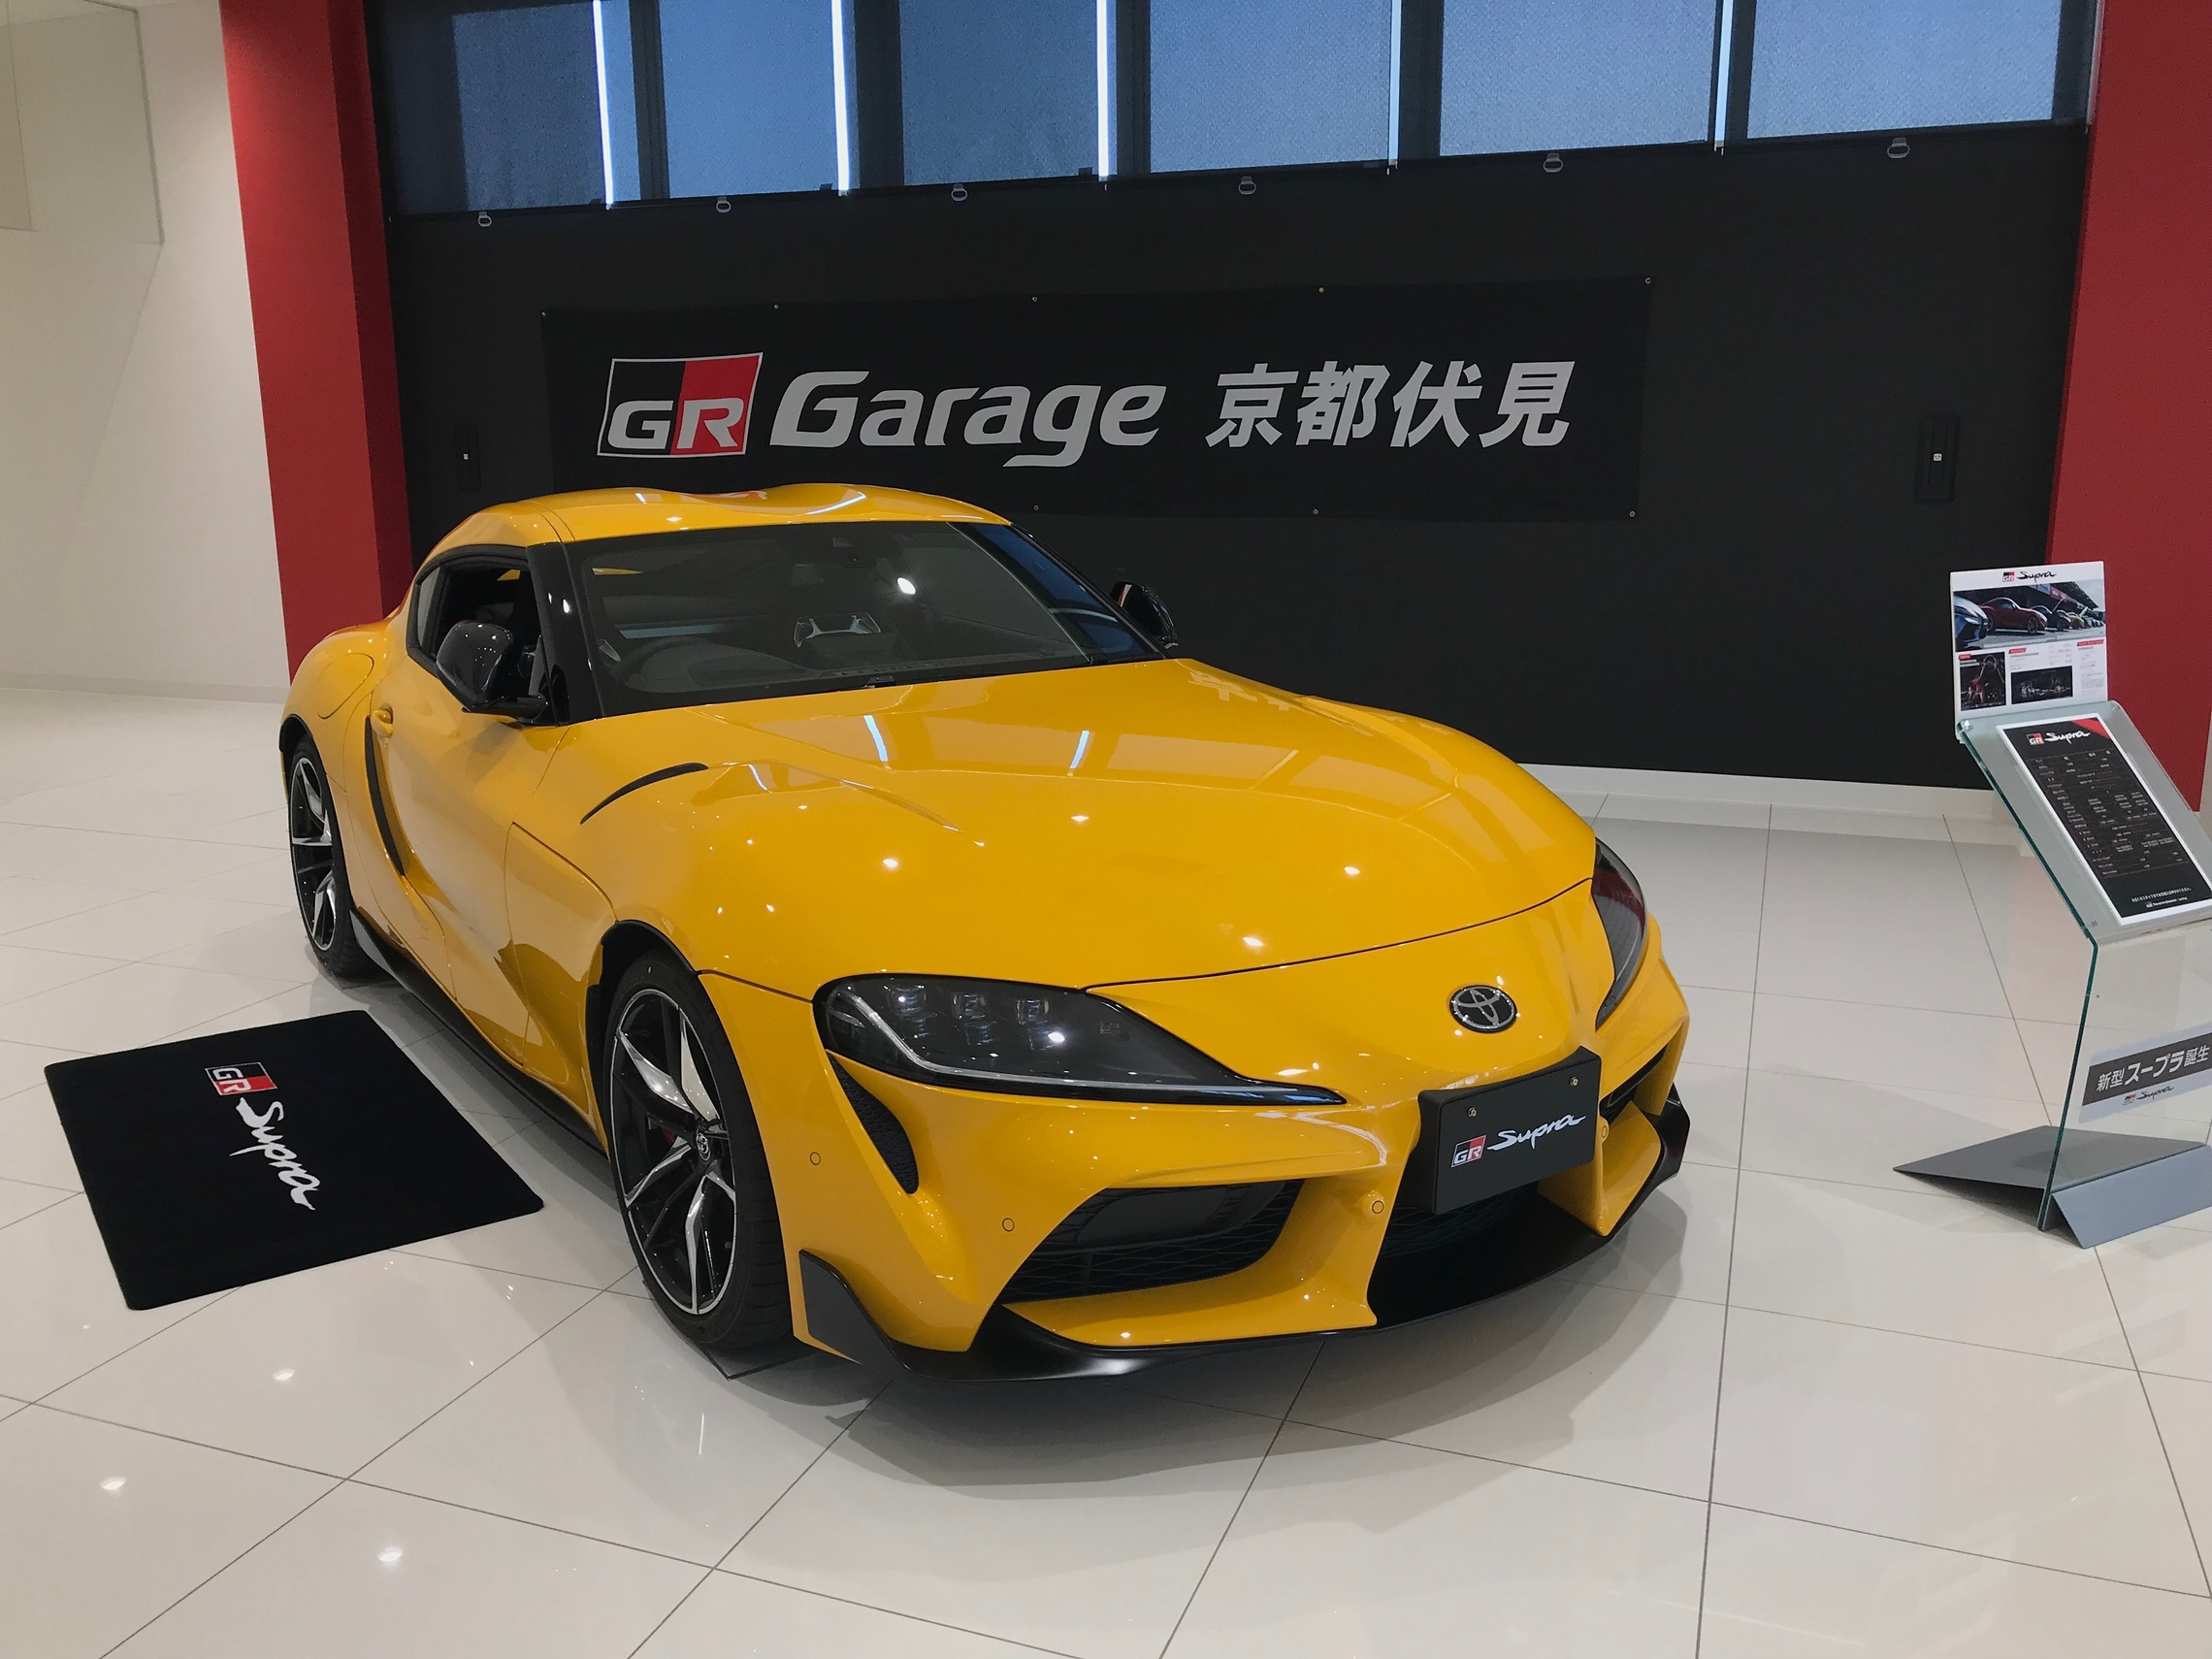 Toyota Supra Edition On The App Store: 京都初!!GRスープラ展示!!